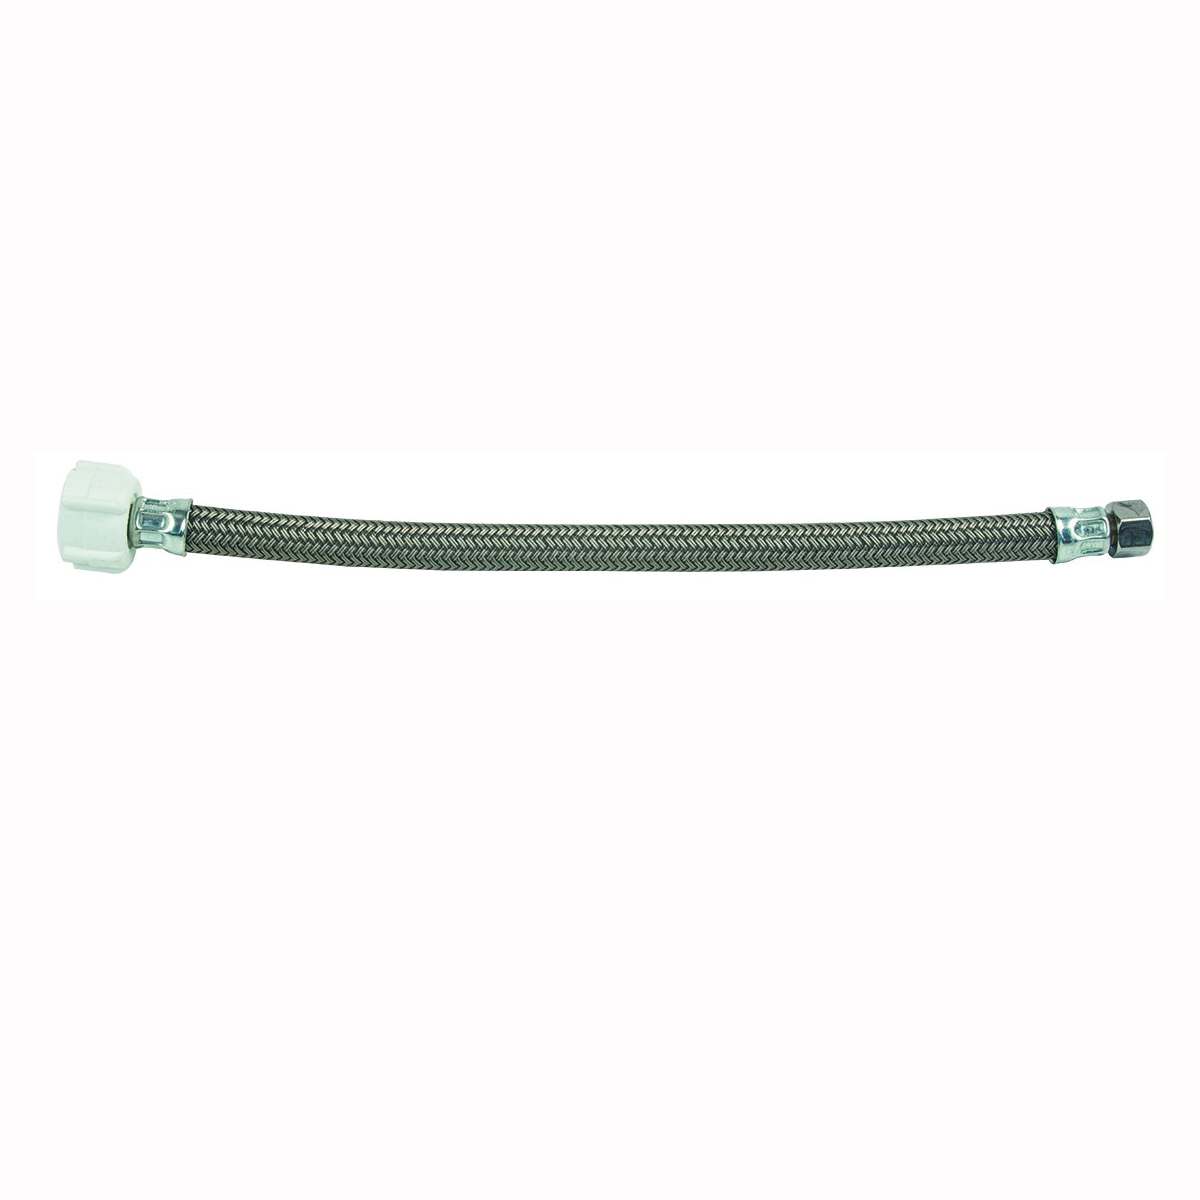 Picture of BrassCraft PSB856 Toilet Connector, 3/8 in Inlet, Compression Inlet, 7/8 in Outlet, Ballcock Outlet, 12 in L